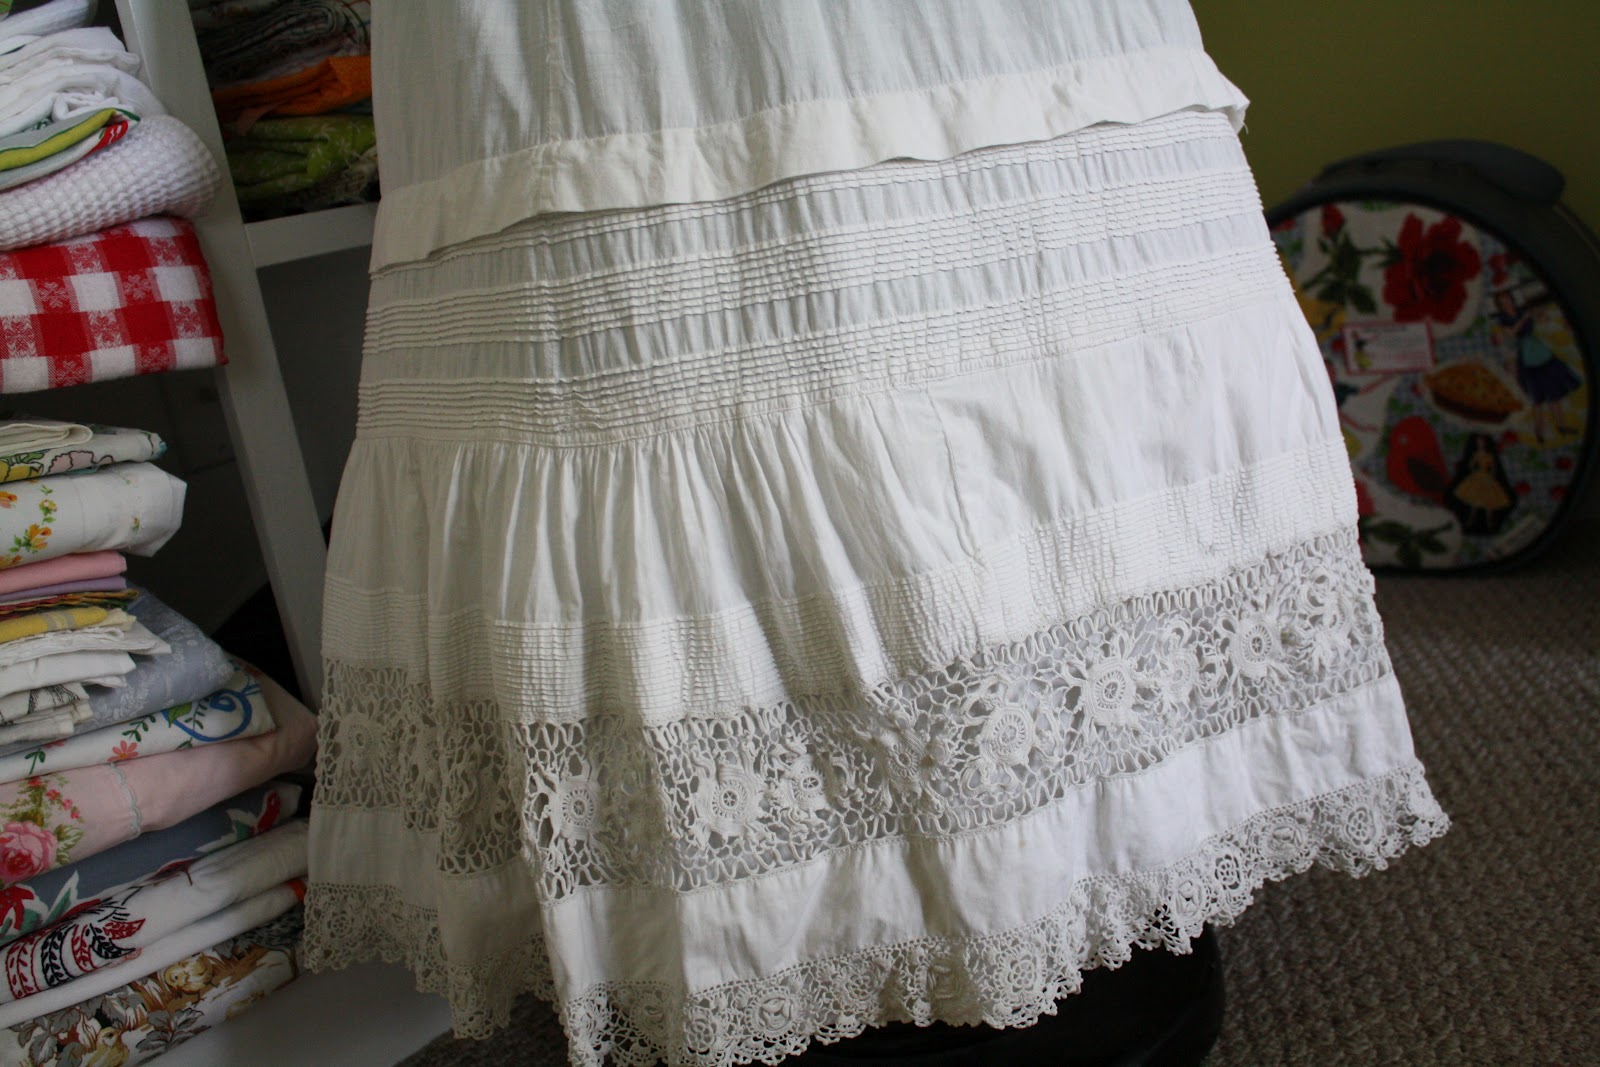 White lace apron ebay - Remember A While Back When I Was Collecting Hundreds Of Crocheted Doilies For My Big Table Runners Order I Bought A Lot Of 50 Of Them From Ebay And The